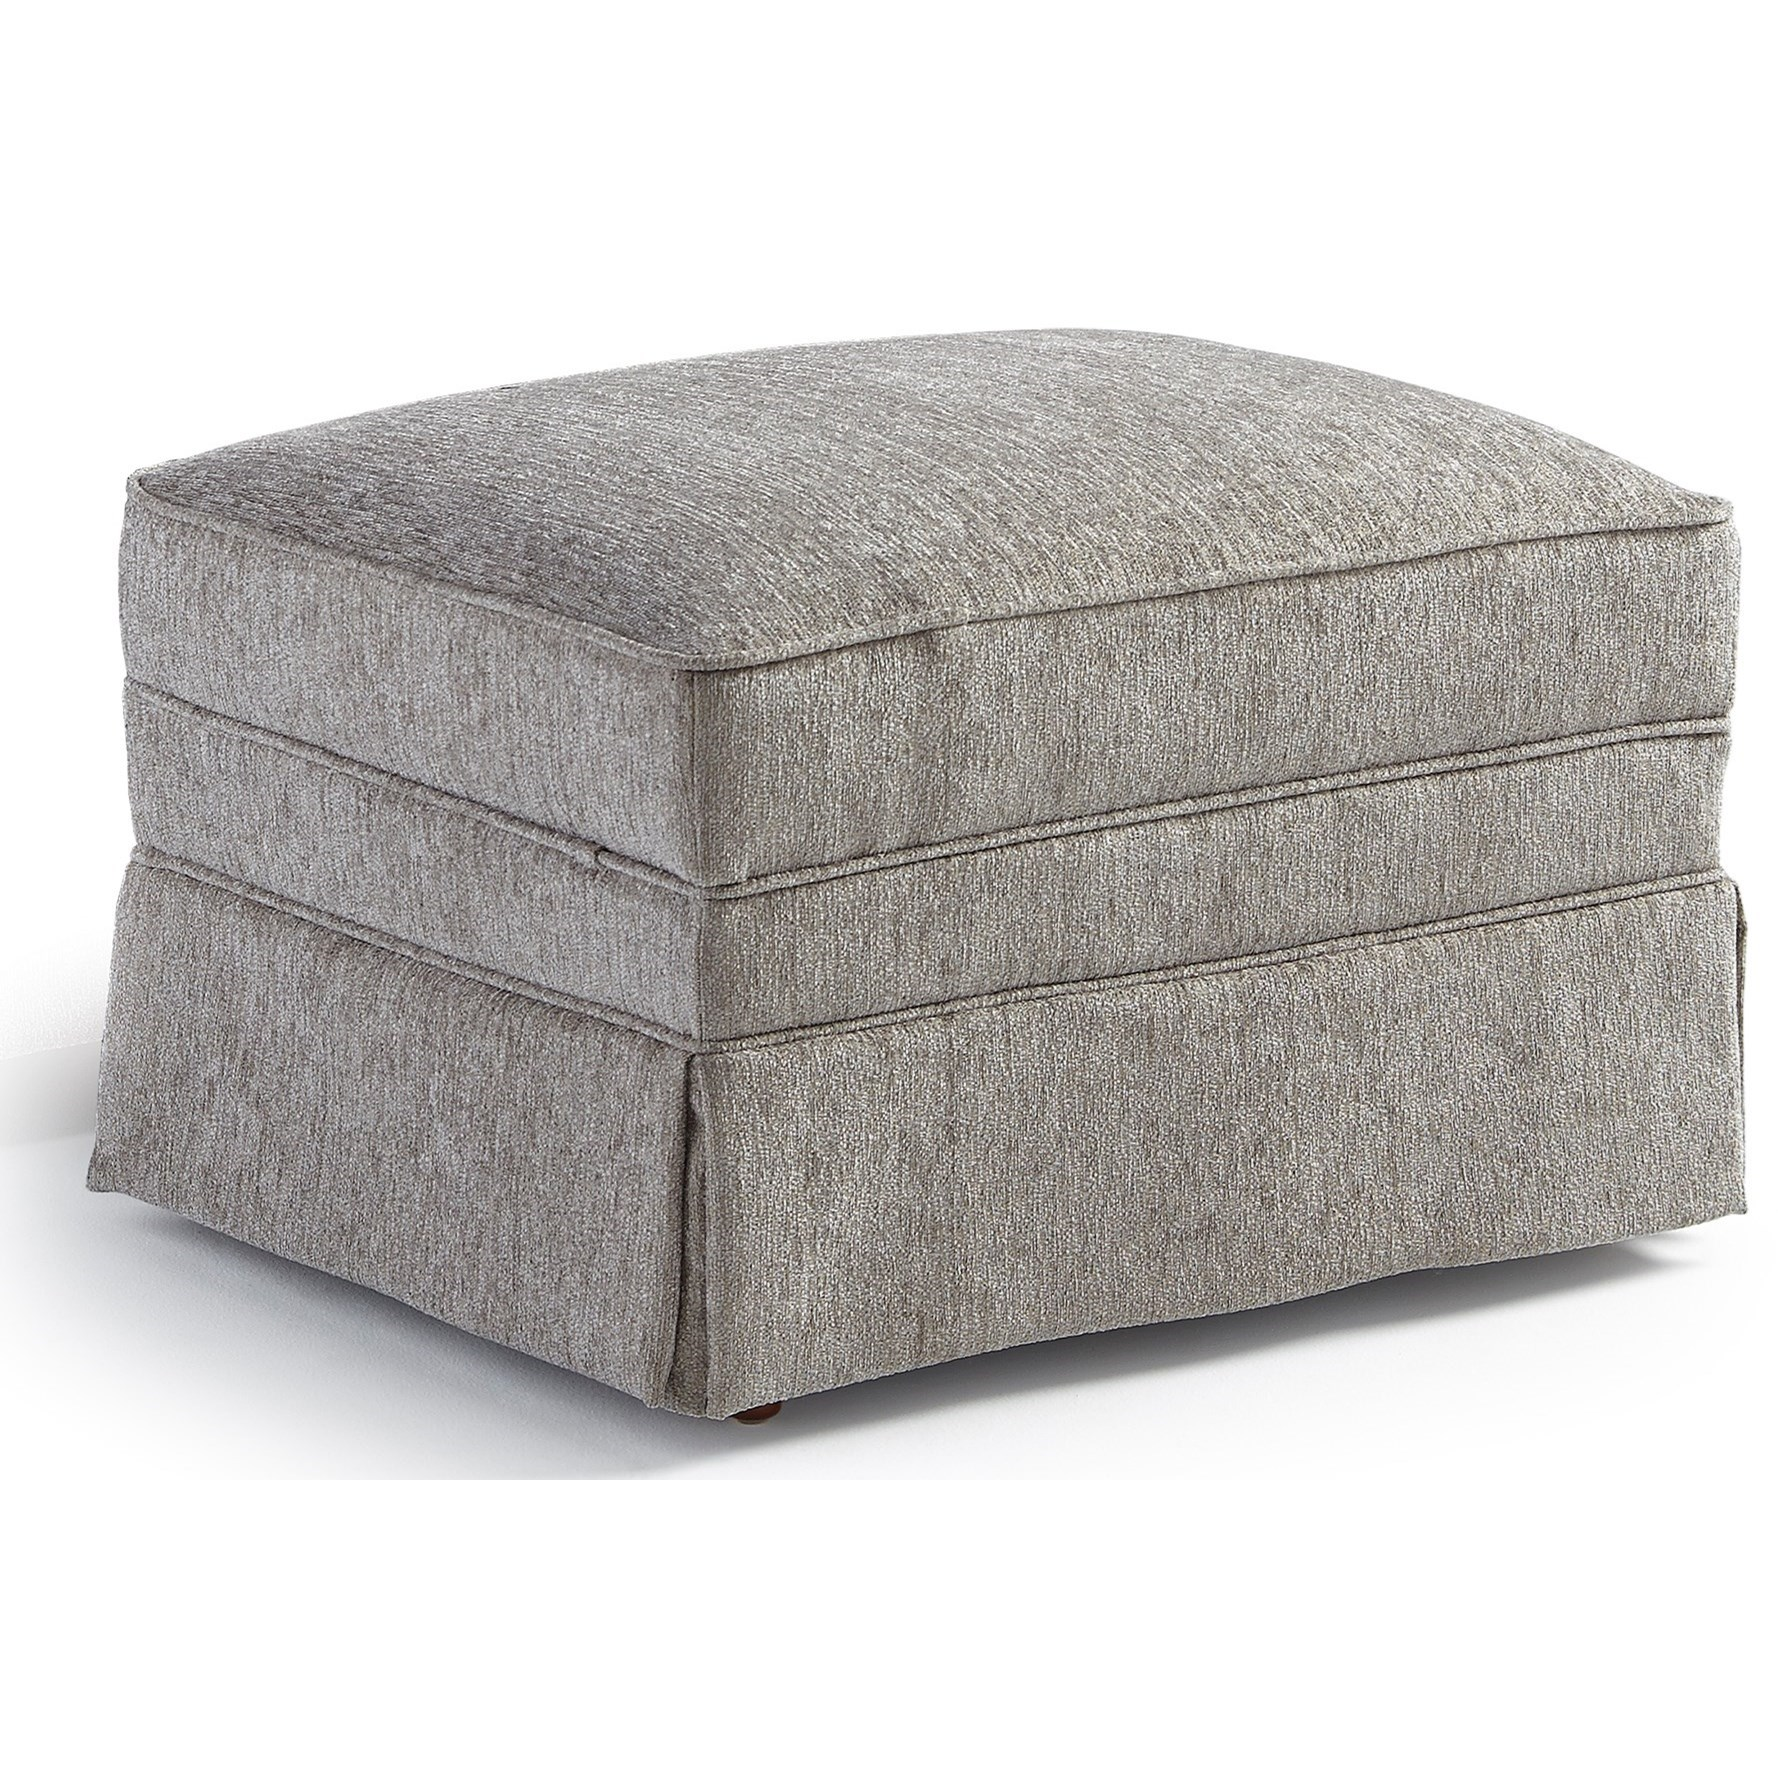 Best home furnishings ottomans 0010 2 traditional - What is an ottoman ...